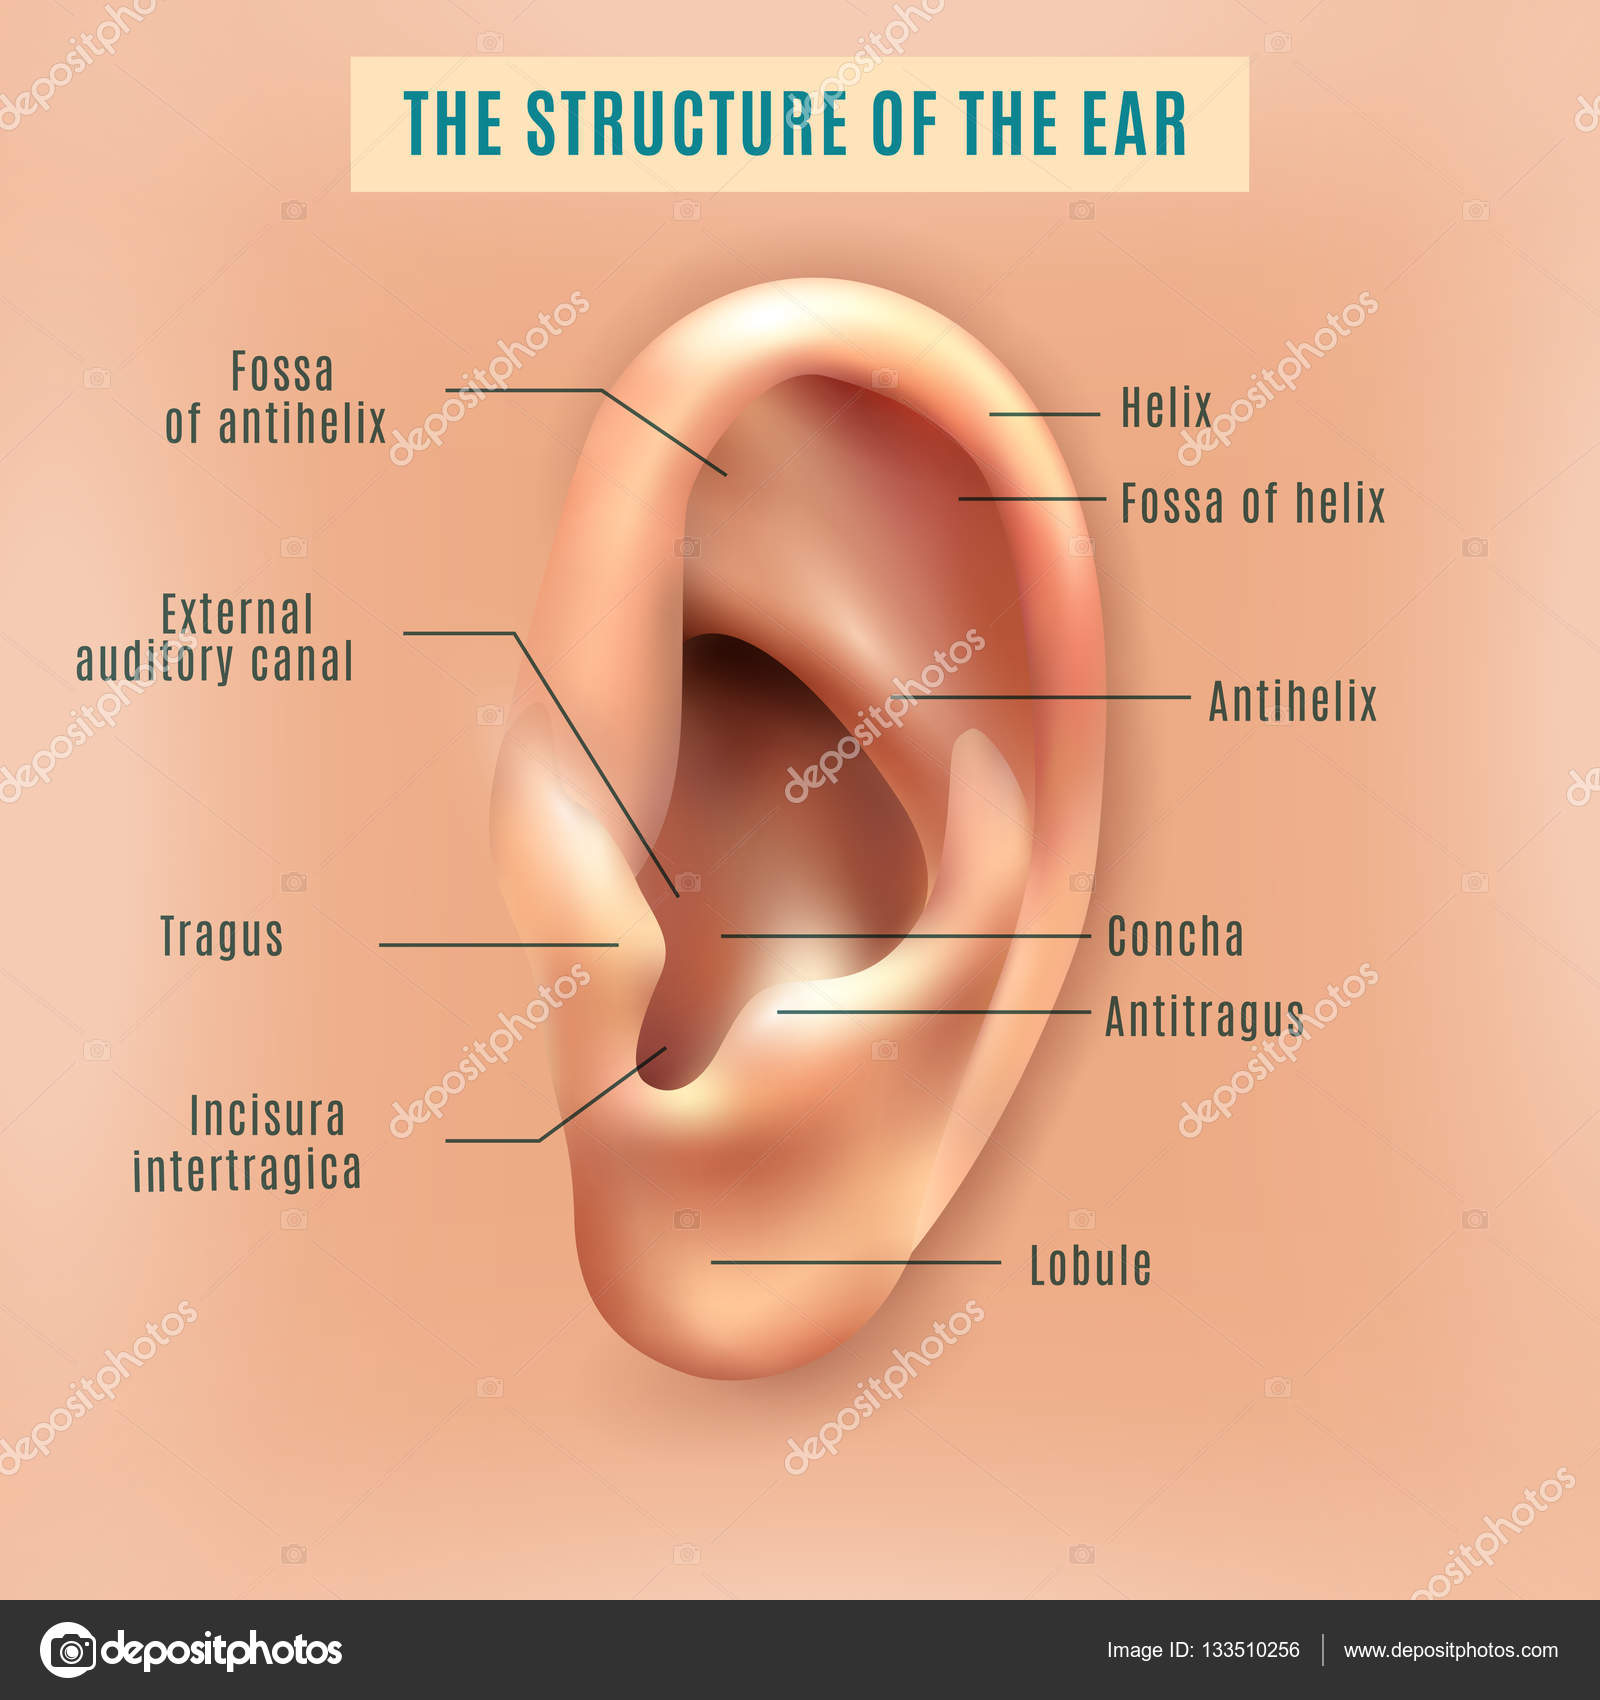 Human ear structure medical background poster stock vector outer external part of human ear structure picture and definitions medical anatomy educative background poster vector illustration vector by macrovector pooptronica